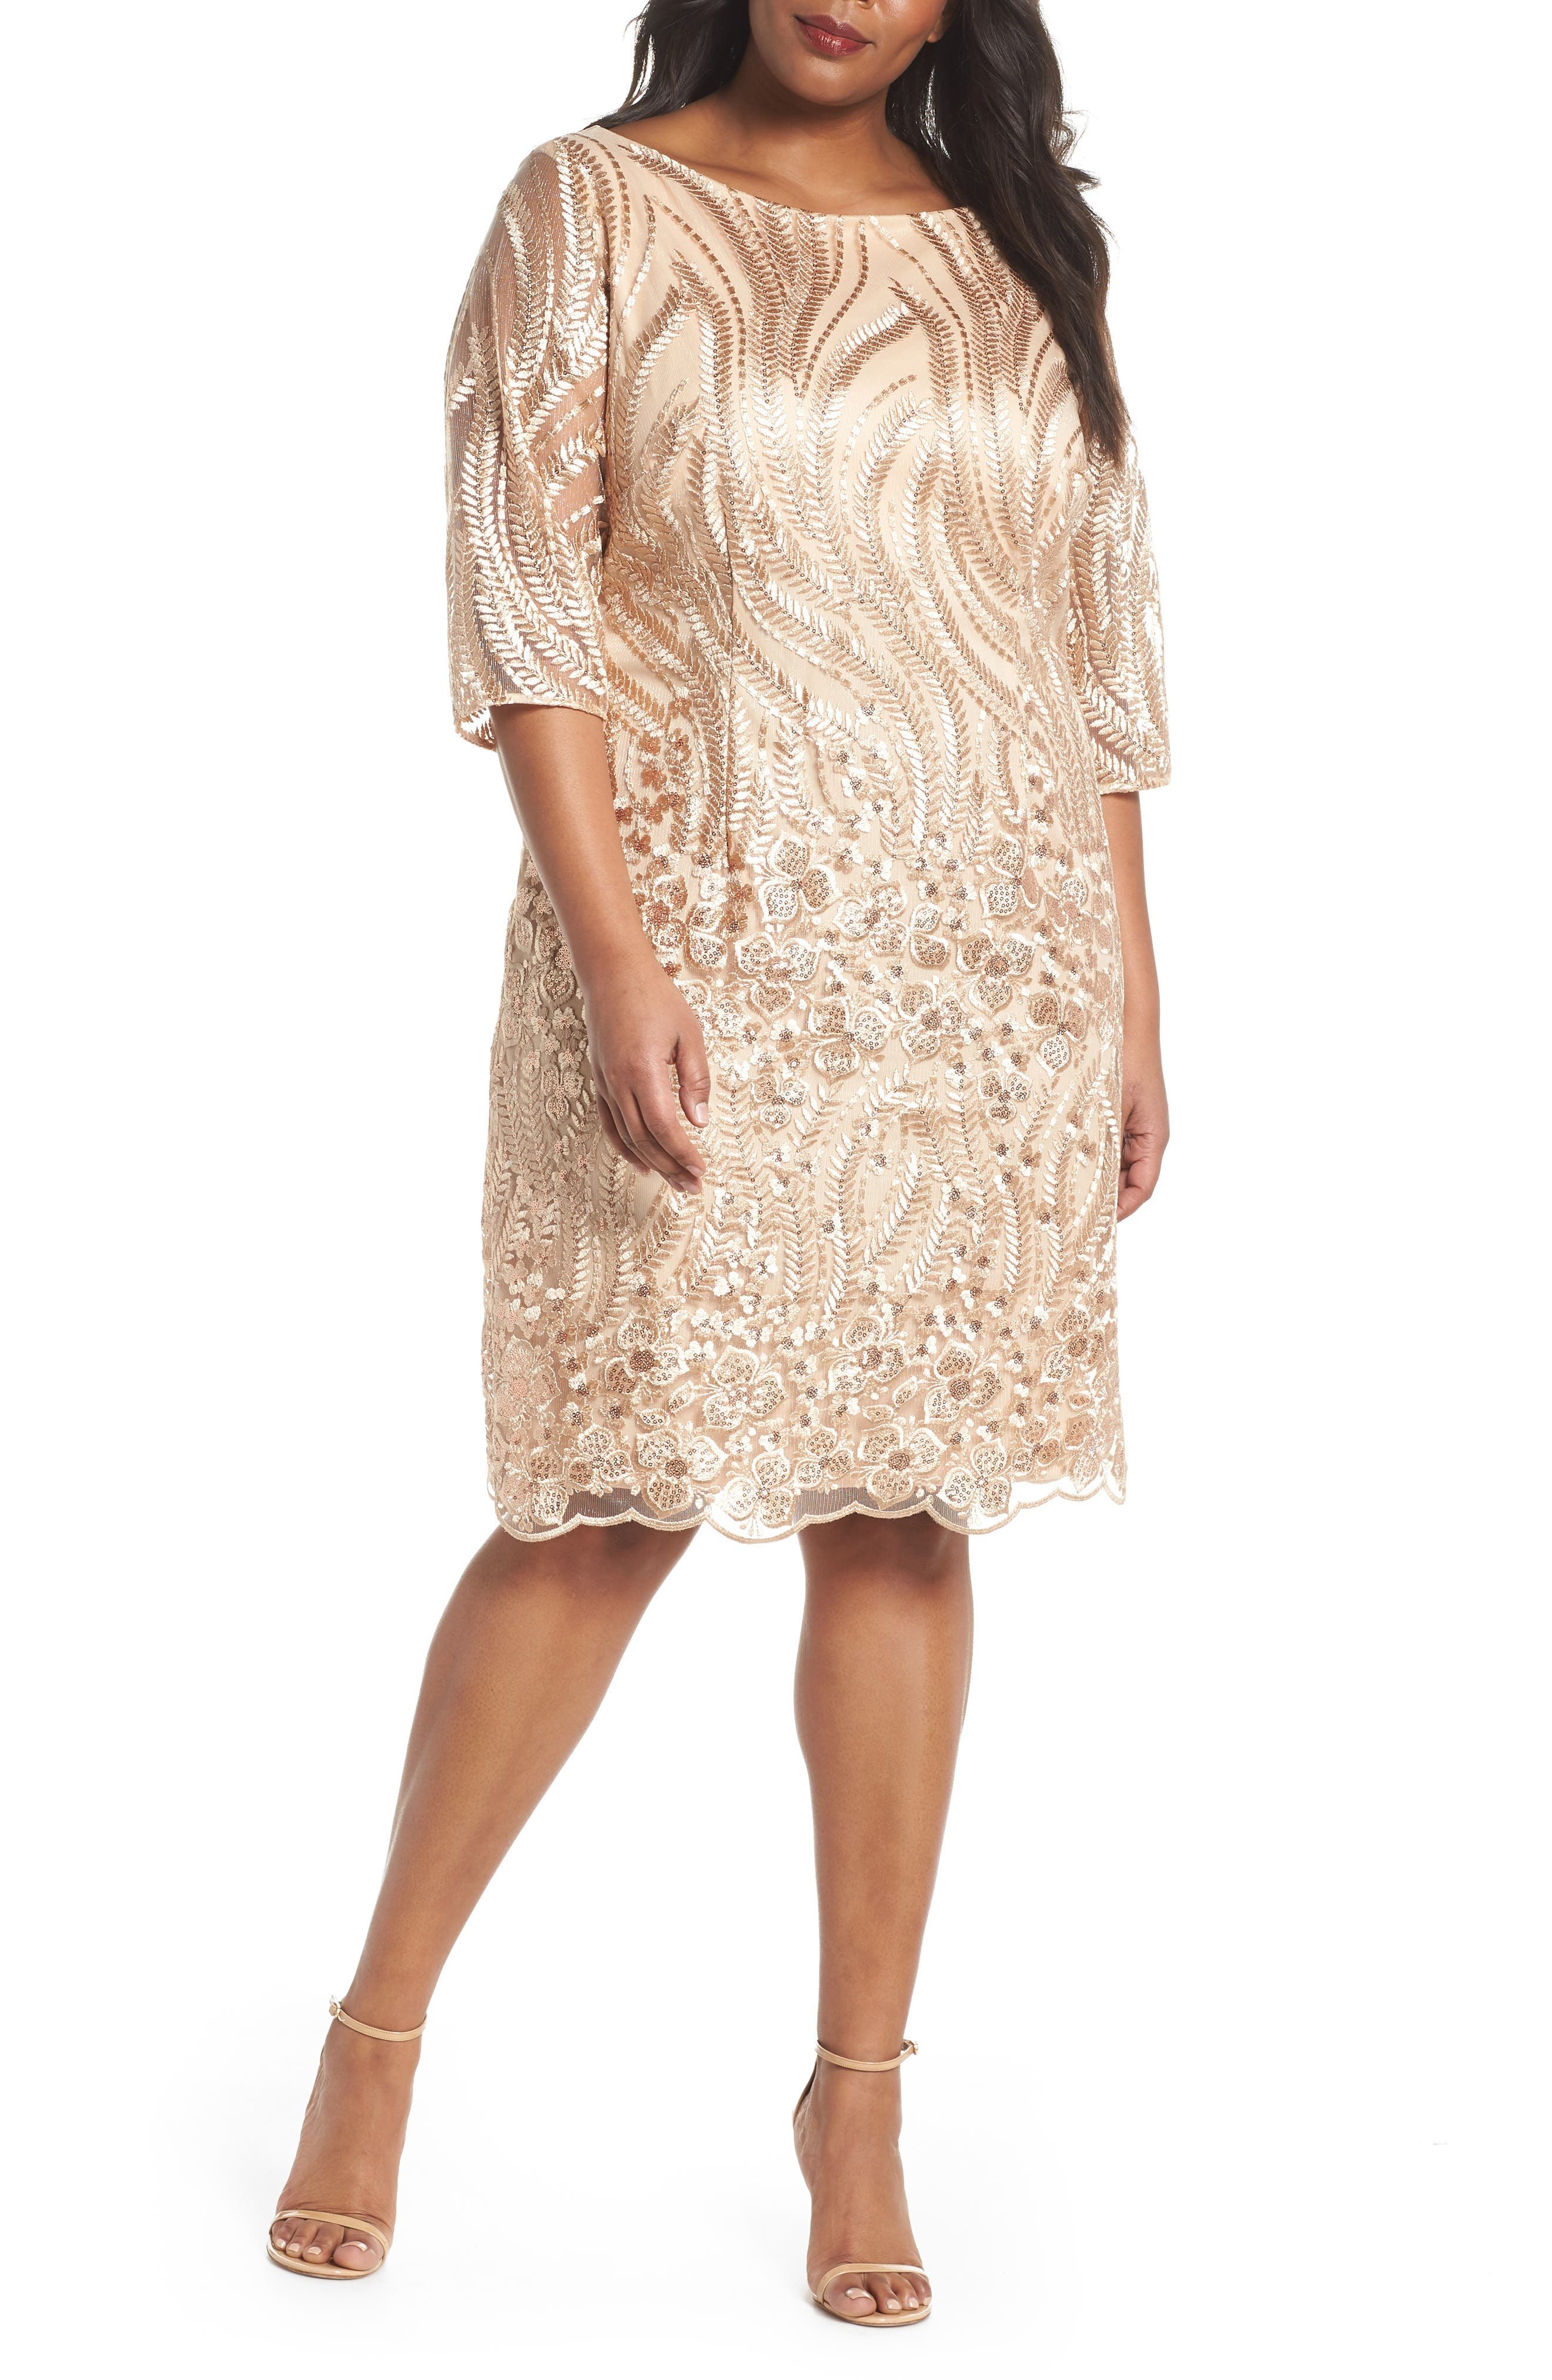 Main Image - Brianna Sequin Embroidered Lace Sheath Dress (Plus Size)